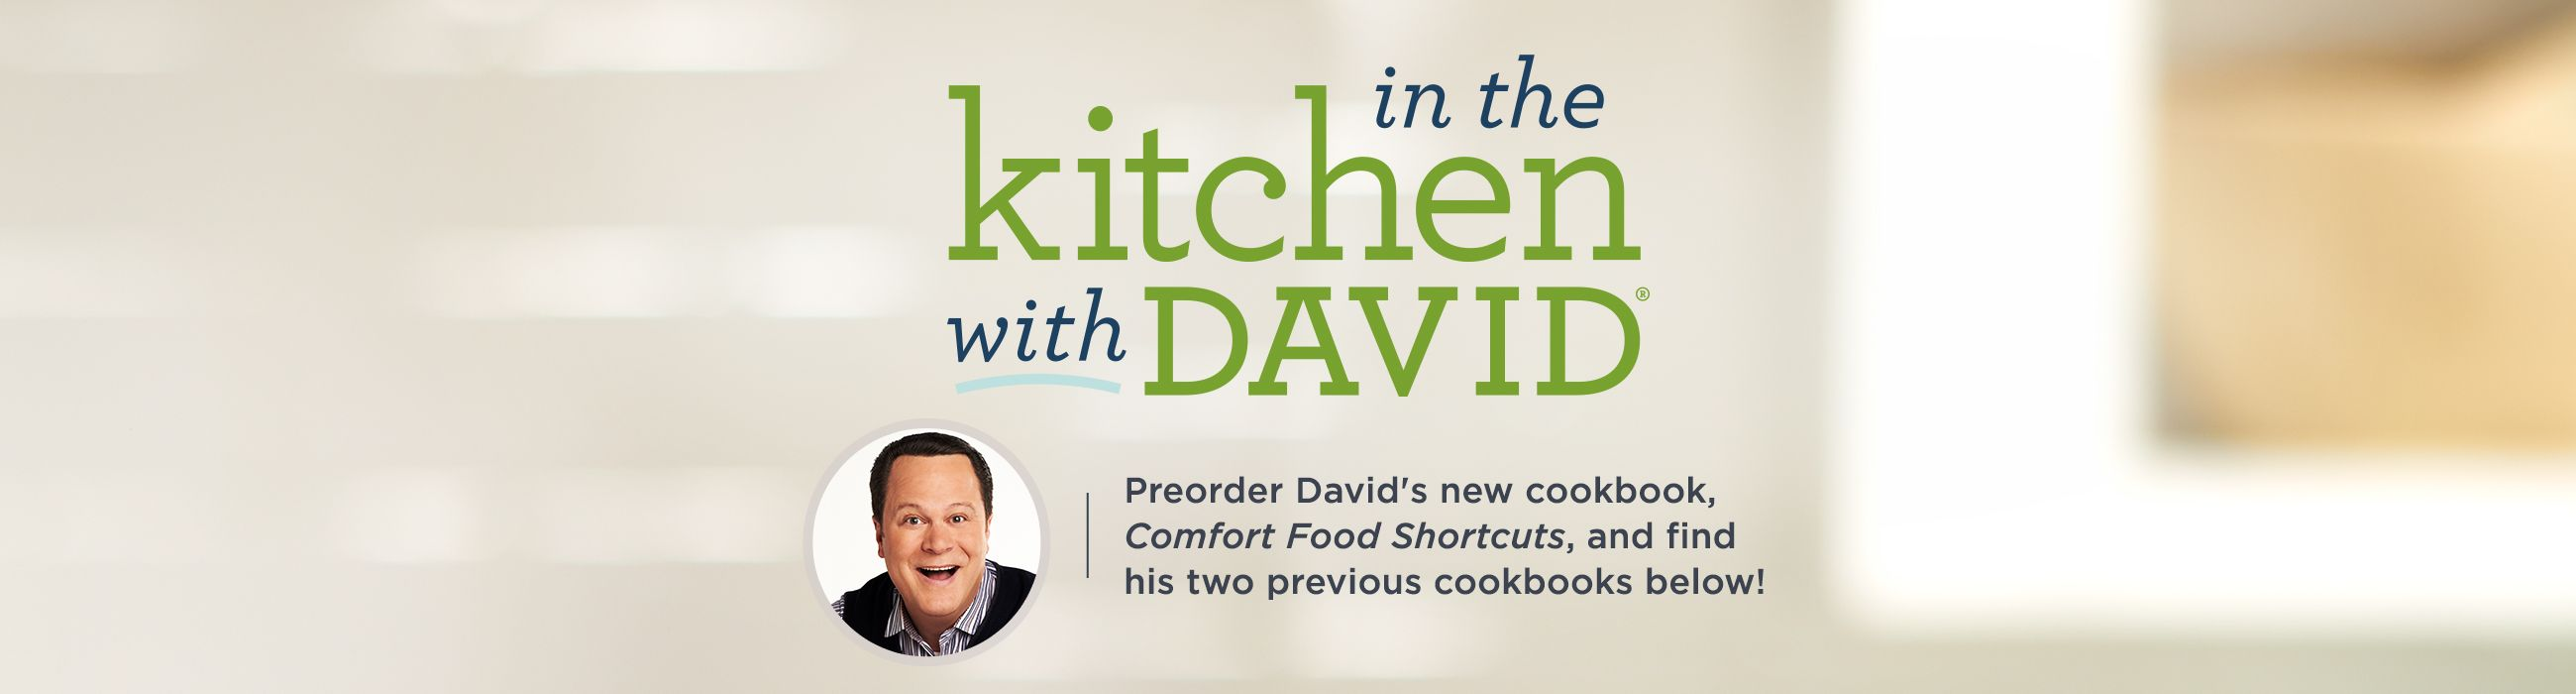 ... And In The Kitchen With David. Preorder Davidu0027s New Cookbook, Comfort  Food Shortcuts, And